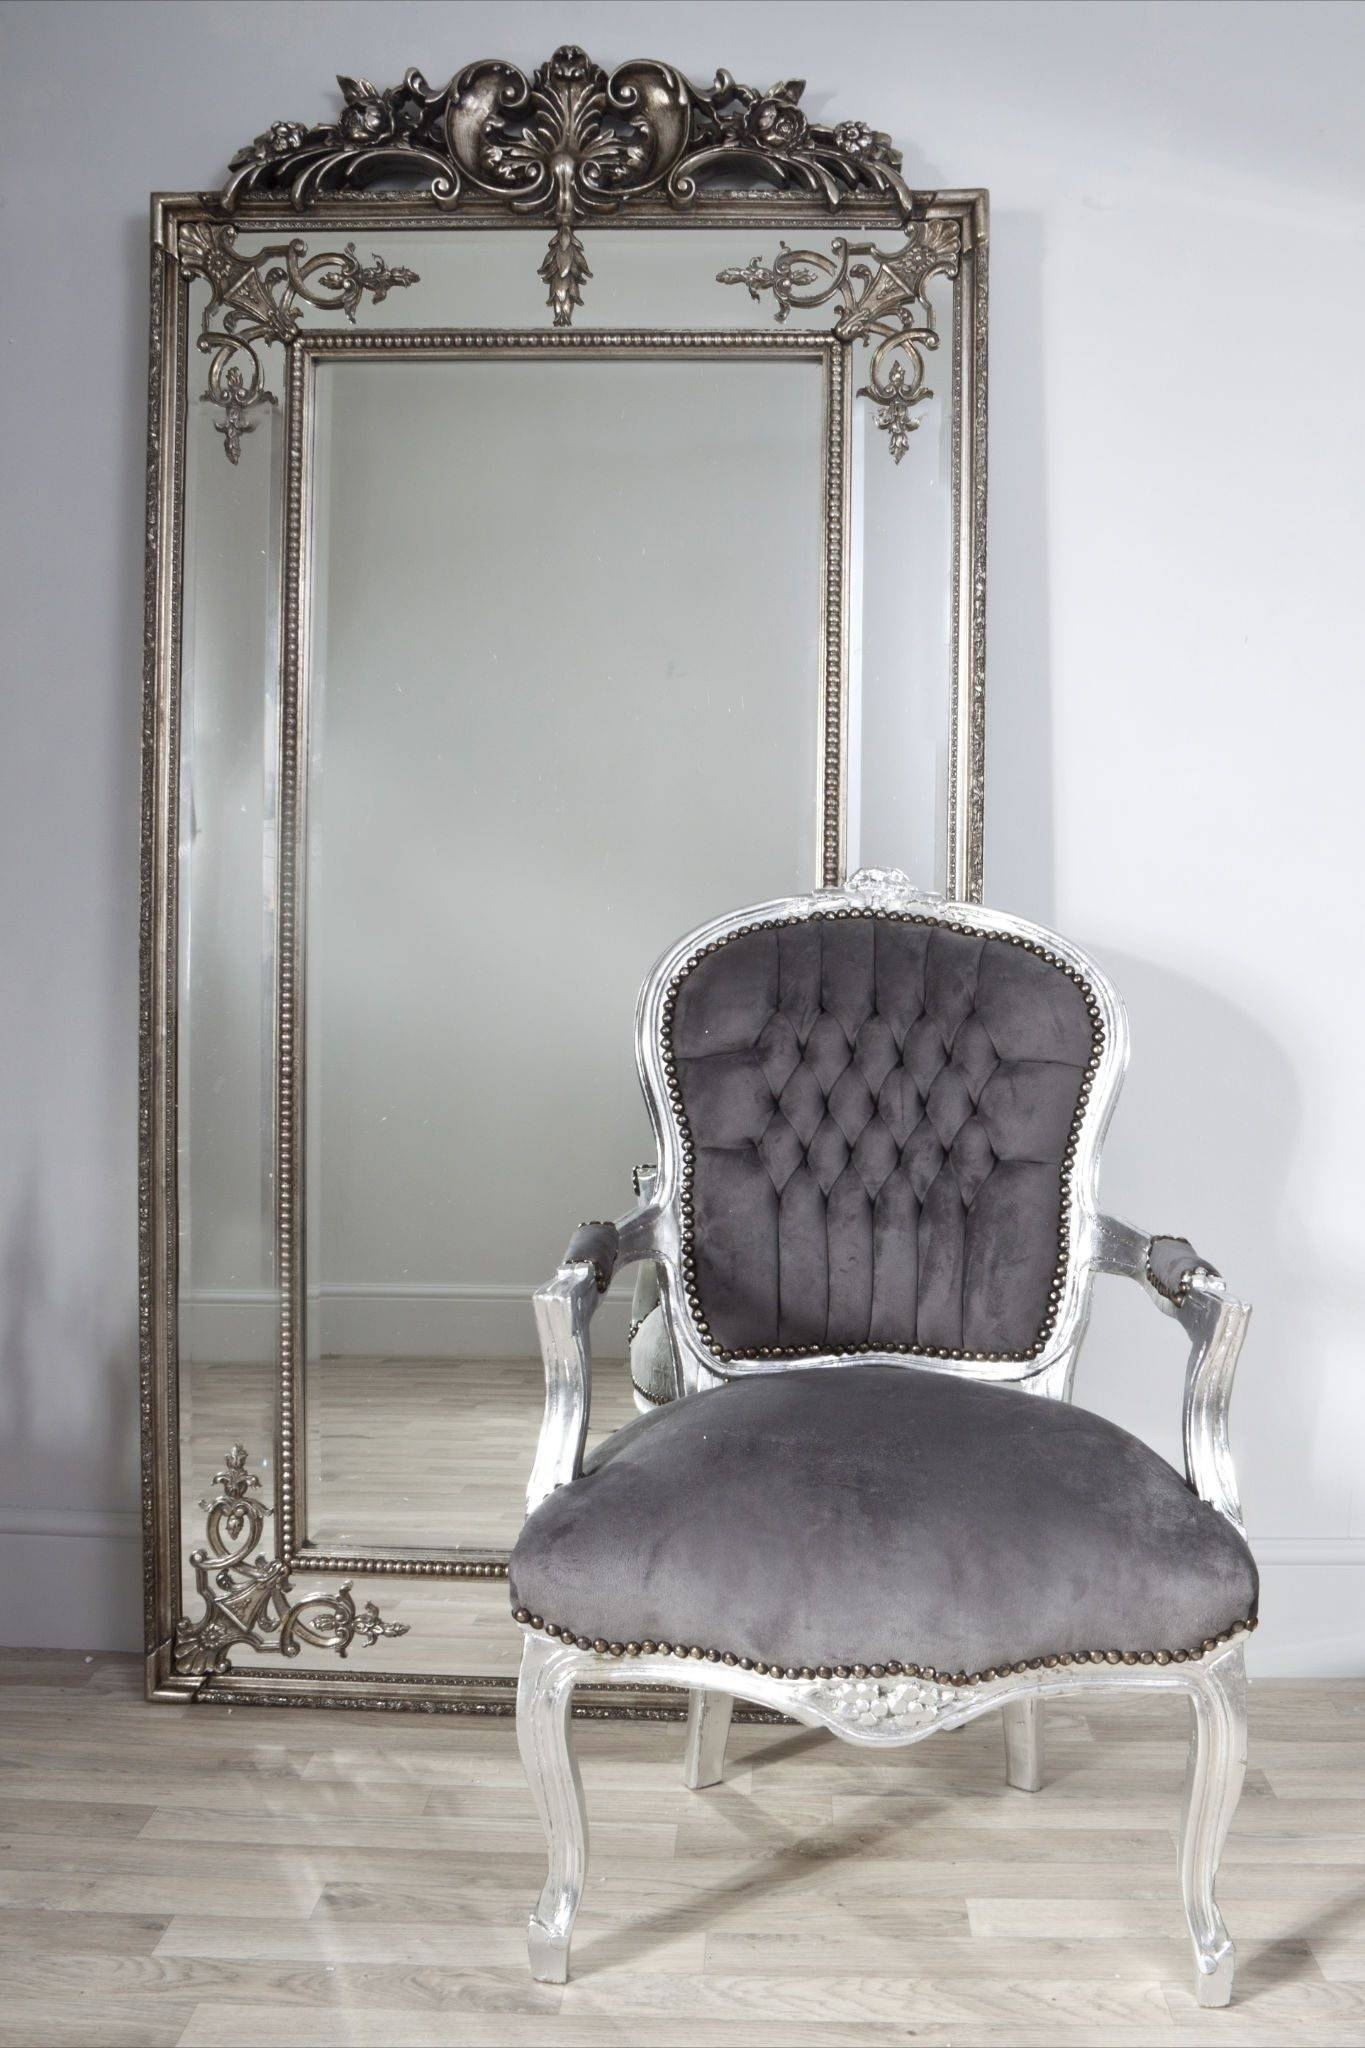 Ornate Mirrors For Sale 125 Awesome Exterior With Large Wall in Ornate Large Mirrors (Image 17 of 25)